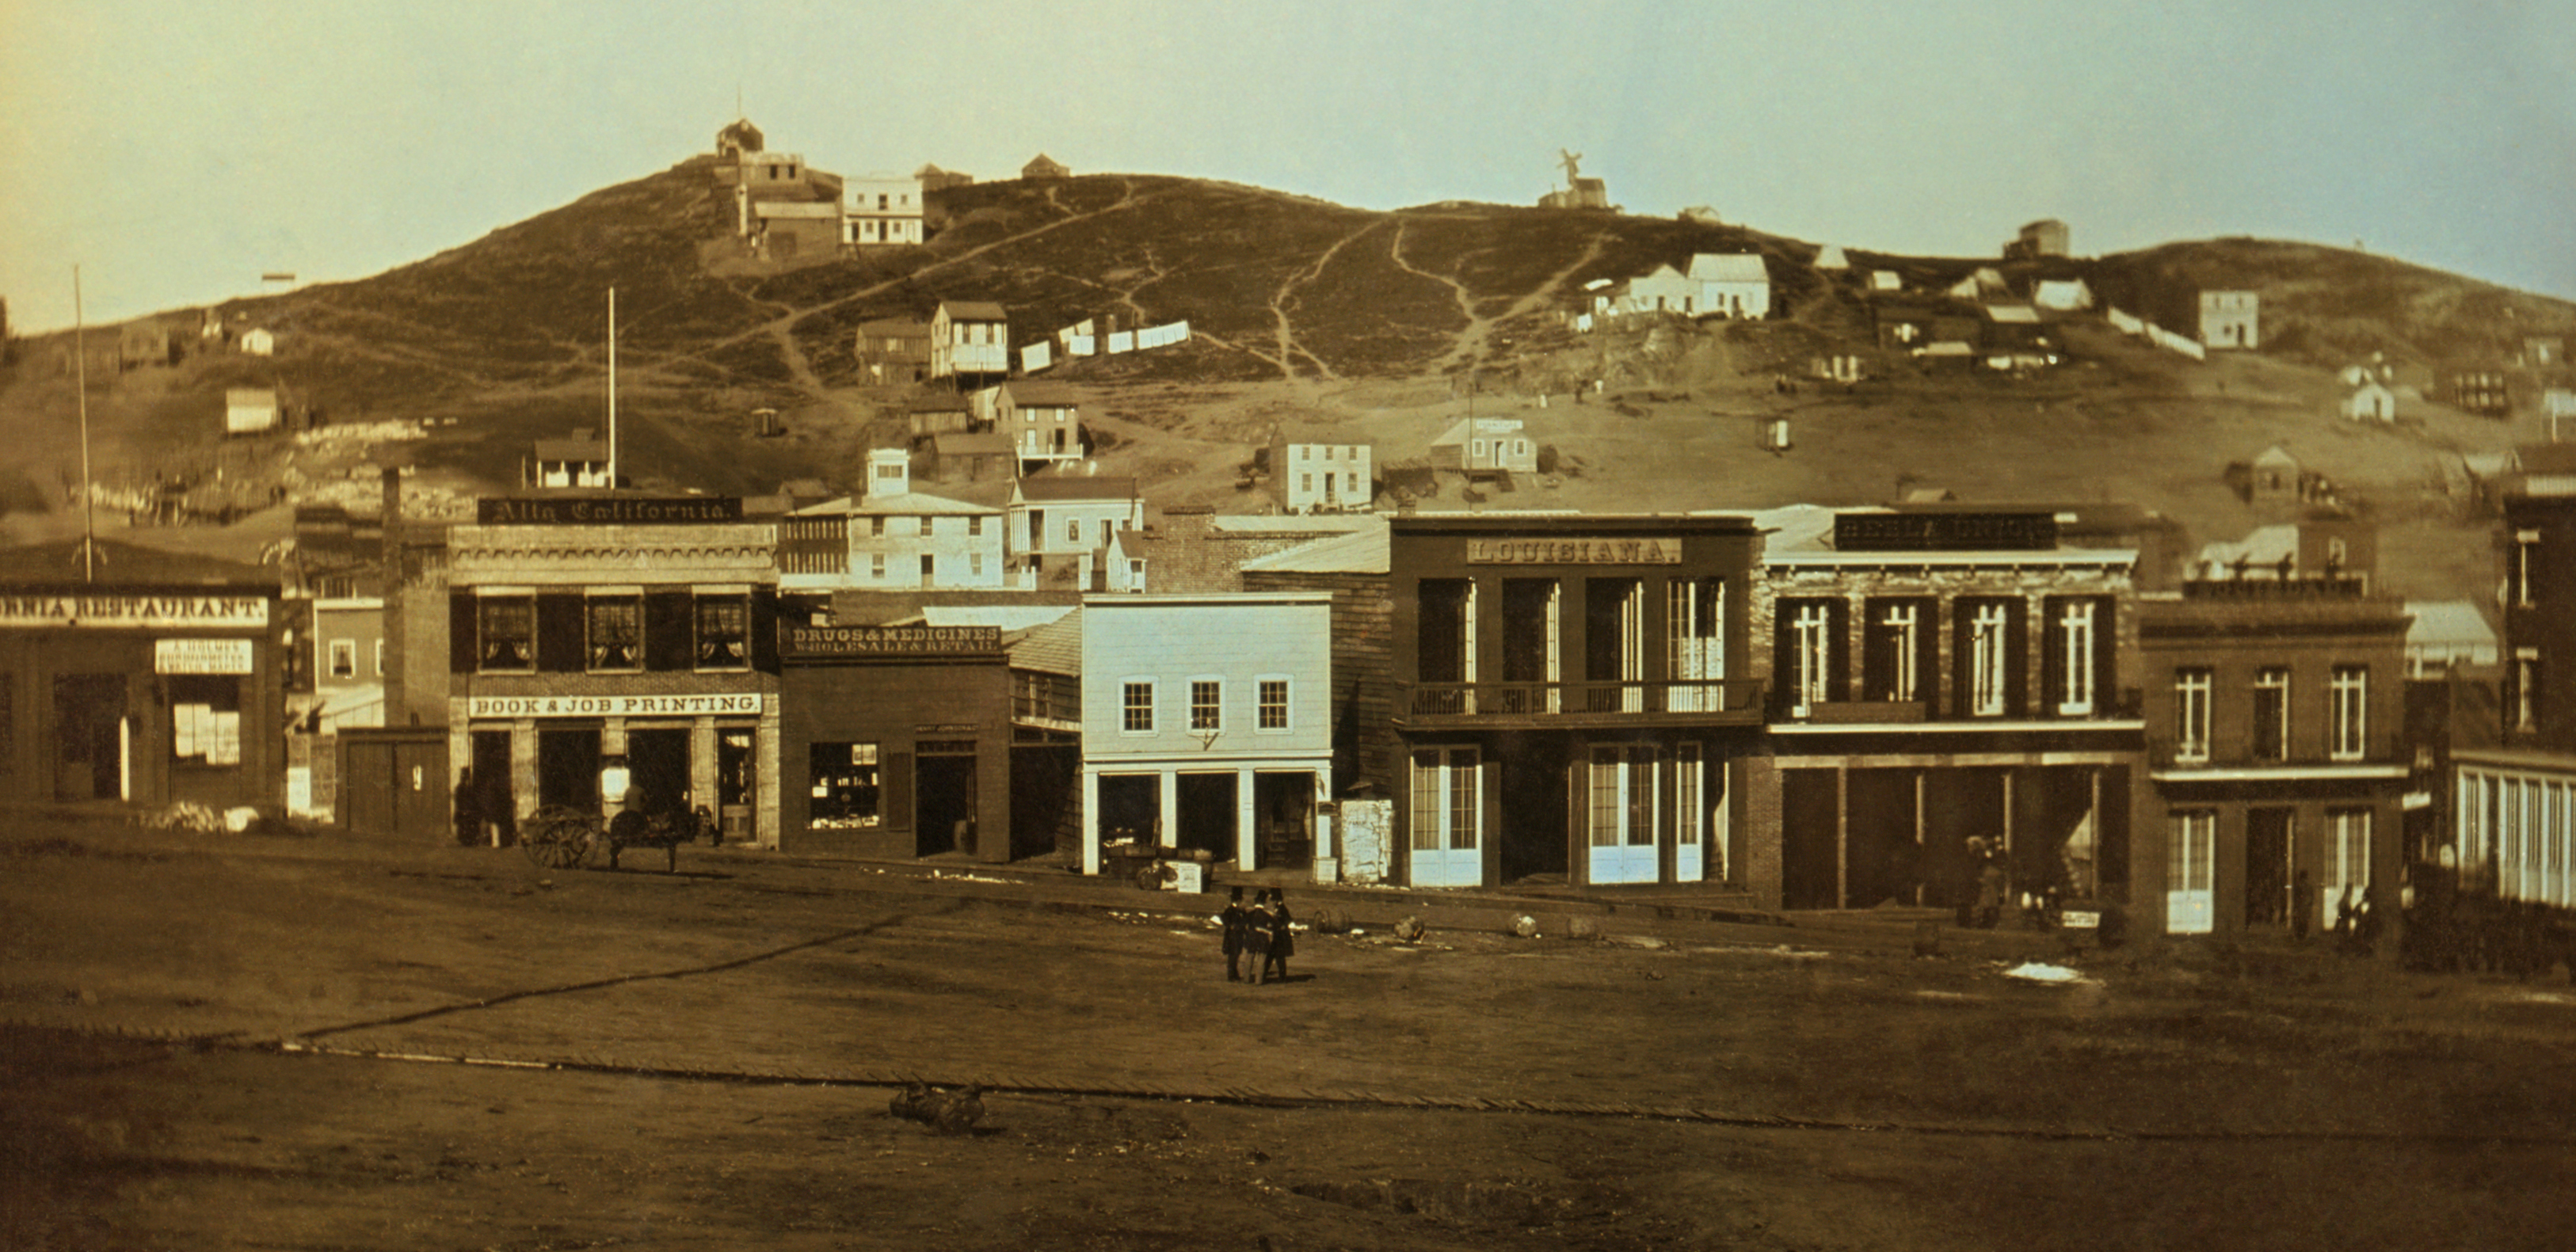 Portsmouth Square, near San Francisco harbor, during the Gold Rush, 1851. Signs in image include: California Restaurant, Book and Job Printing, Louisiana, Sociedad, Drugs & Medicines Wholesale & Retail, Henry Johnson & Co, Alta California, Bella Union, A. Holmes.